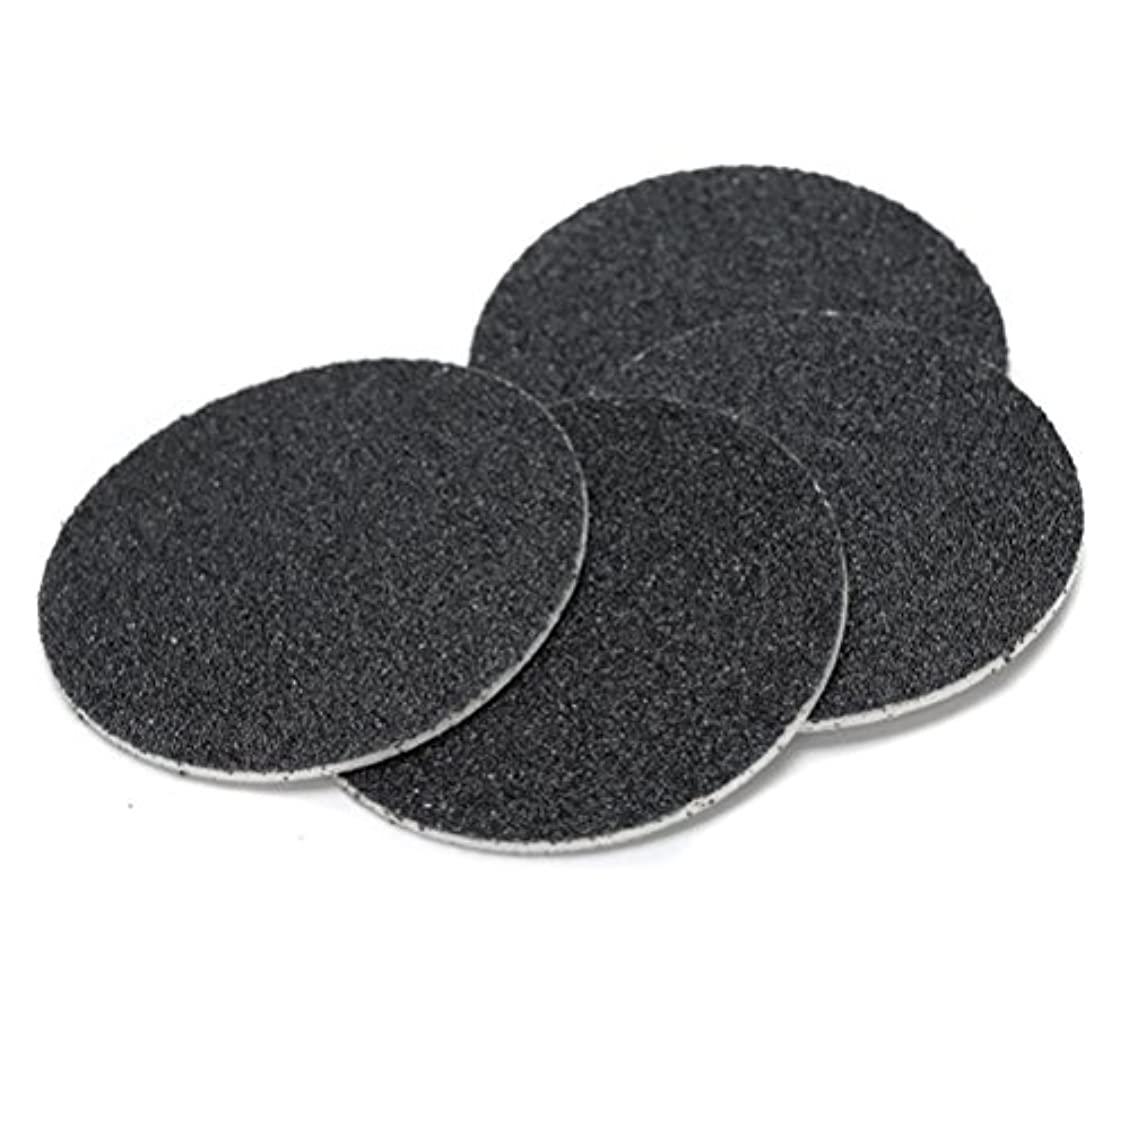 一杯インドブロンズJoint Victory Pedicure Tools 1 Box (60pcs) Replacement Sandpaper Discs Pad for Electric Foot File Callus Remover...